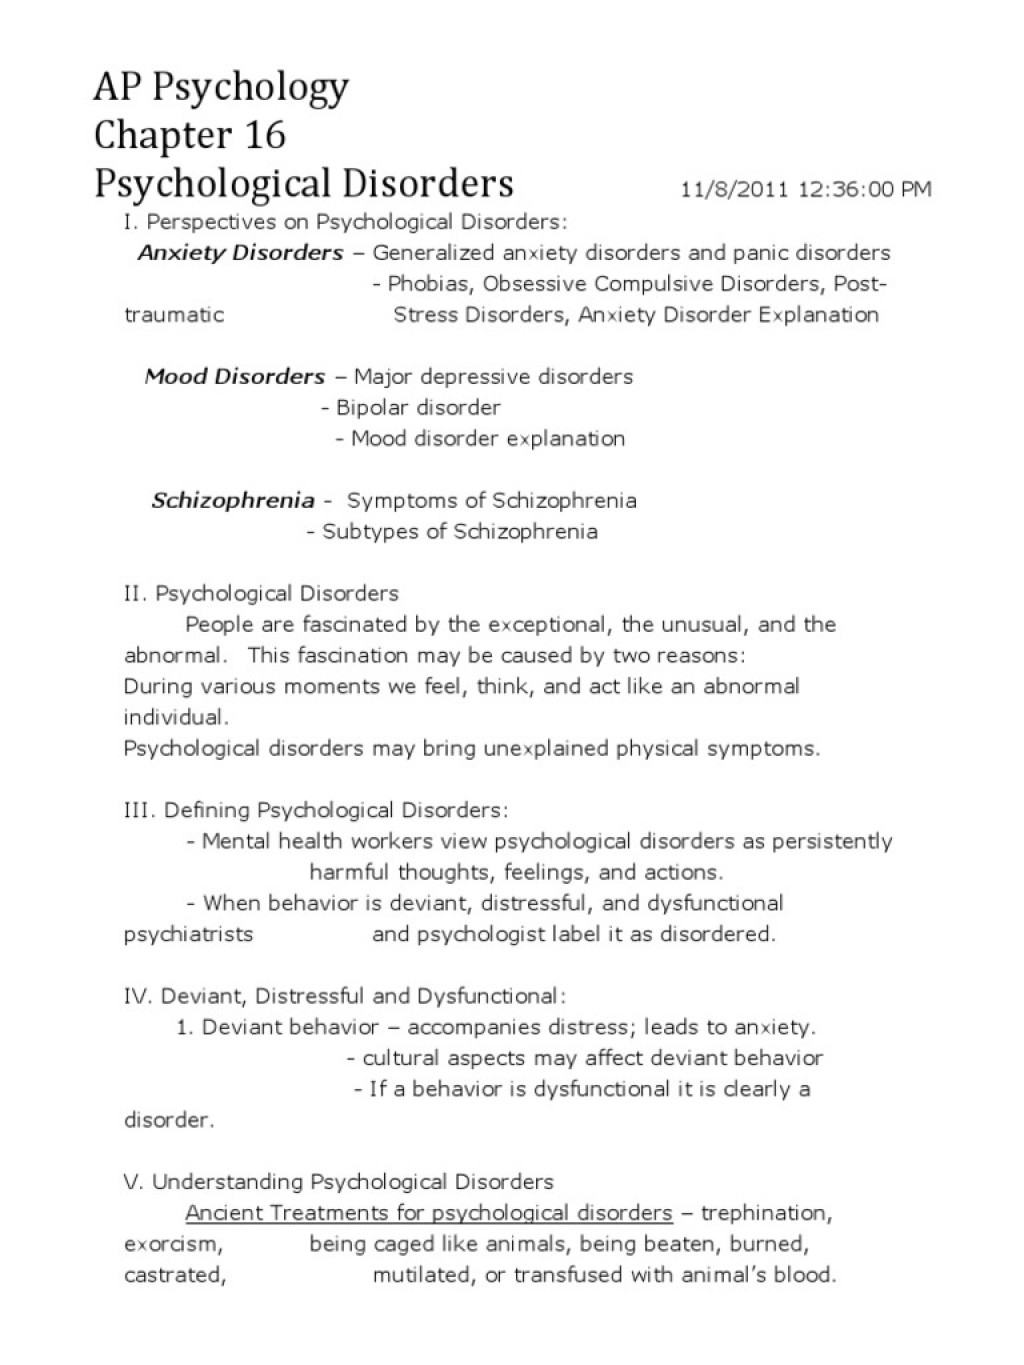 022 Bipolar Disorder Essay Topics Title Pdf College Introduction Question Conclusion Examples Outline Research Paper Controversial Political Marvelous For Debate Papers Large